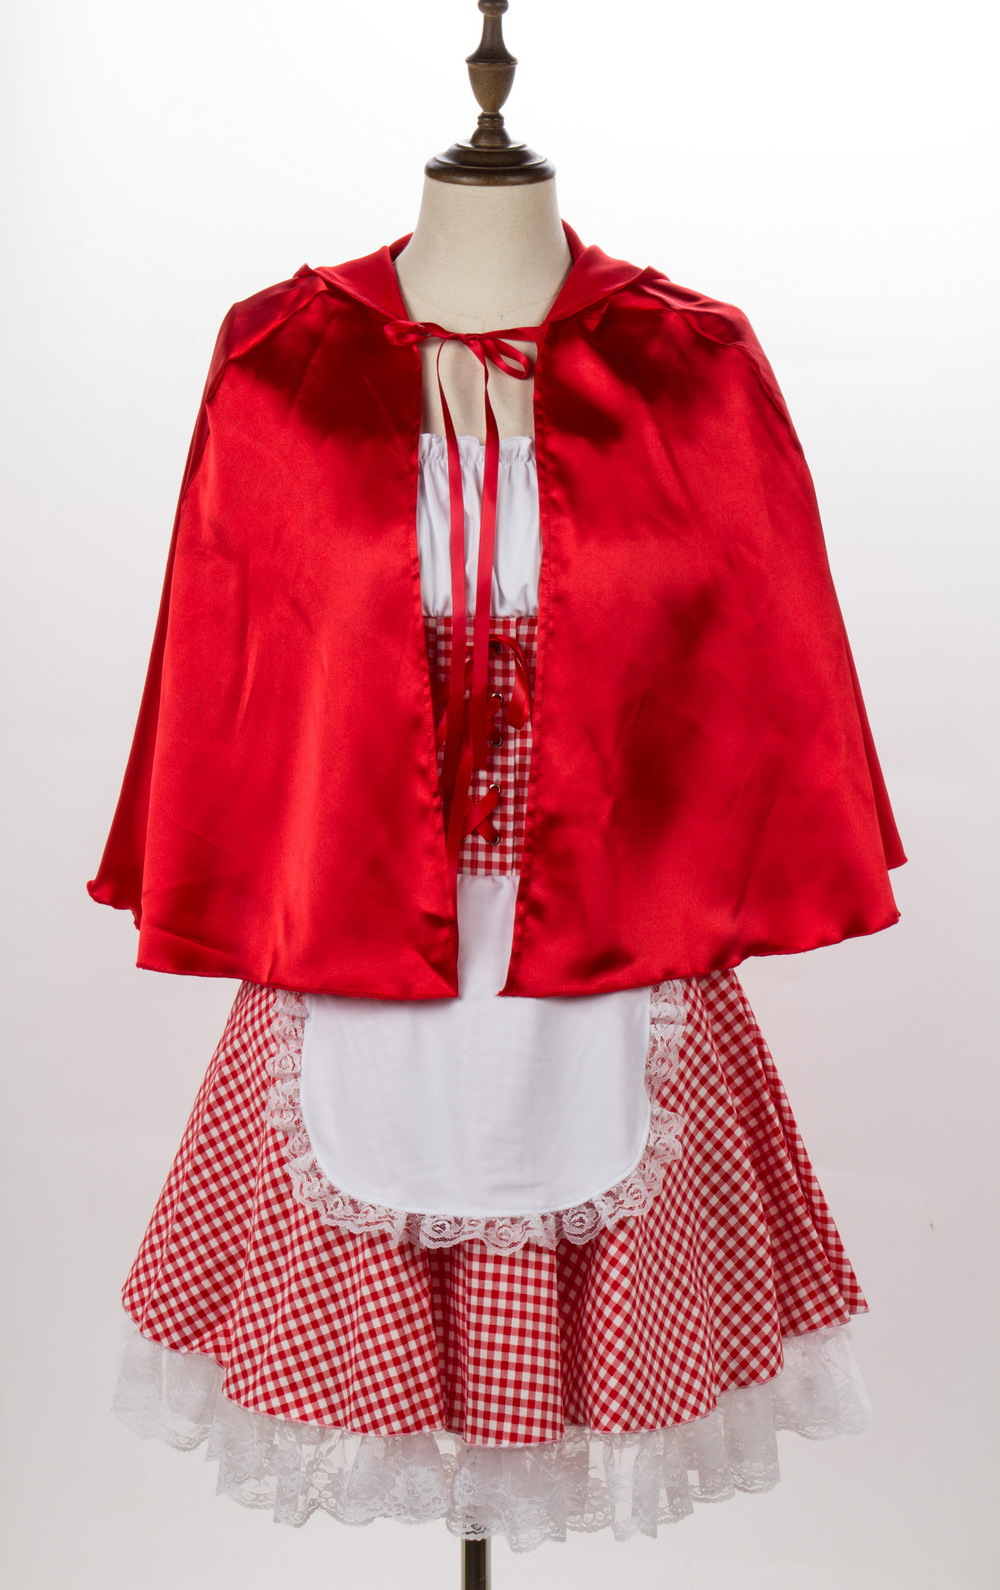 Women Copaly Dress Suit Plaid with Lace Decoration for Halloween Beer Festival  red_XXL